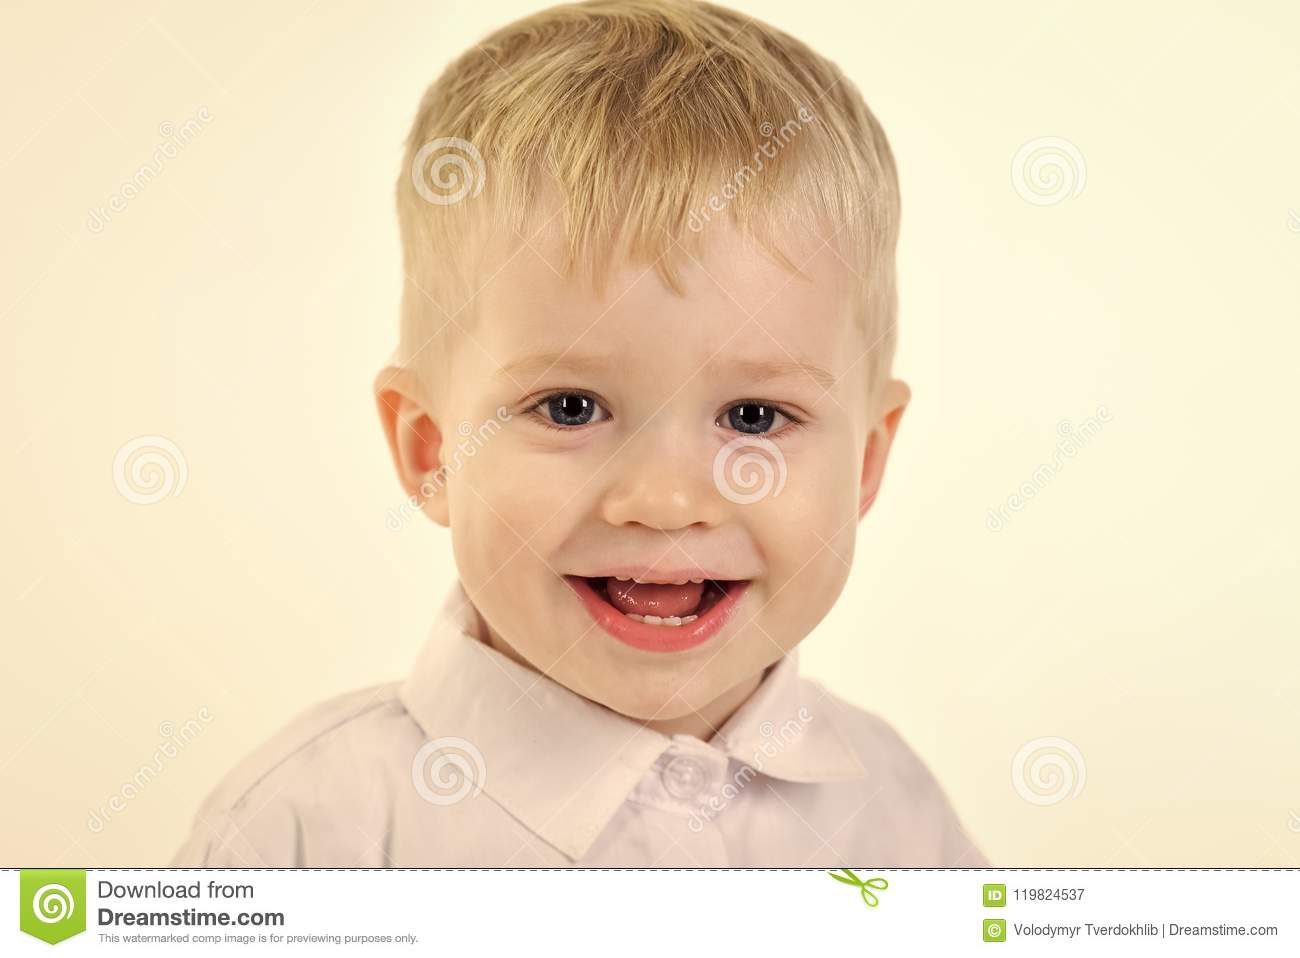 https www dreamstime com little boy white shirt business kid blonde hair fashion kid fashion style look boss baby childhood happiness image119824537